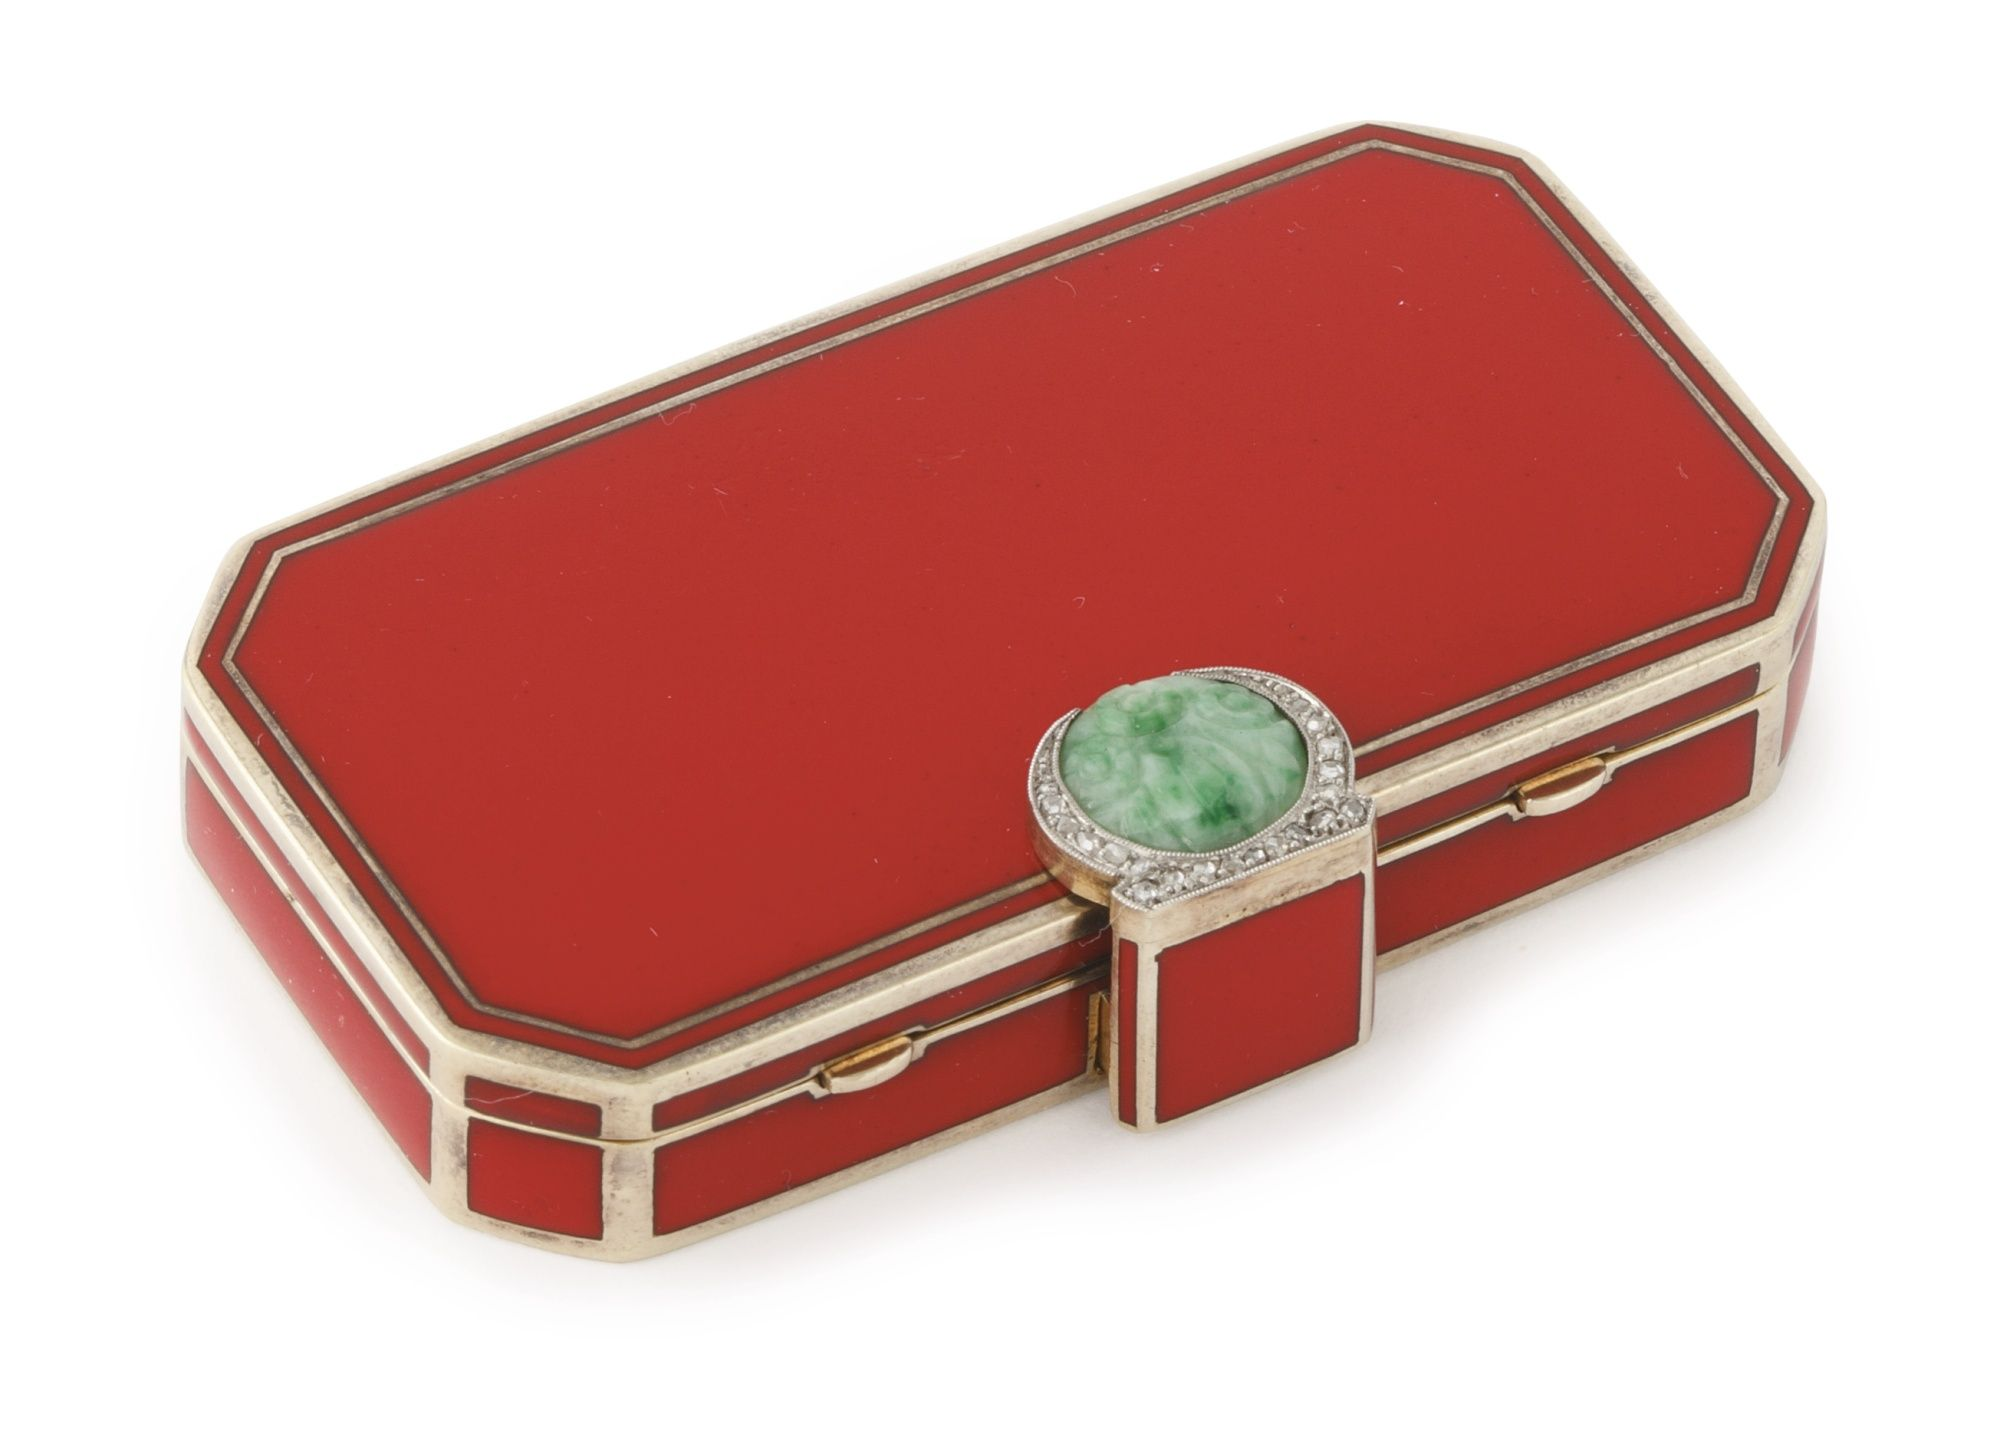 Paris vanity mirror - A French Gold Enamel And Jeweled Compact Auguste Peyroula Paris Circa